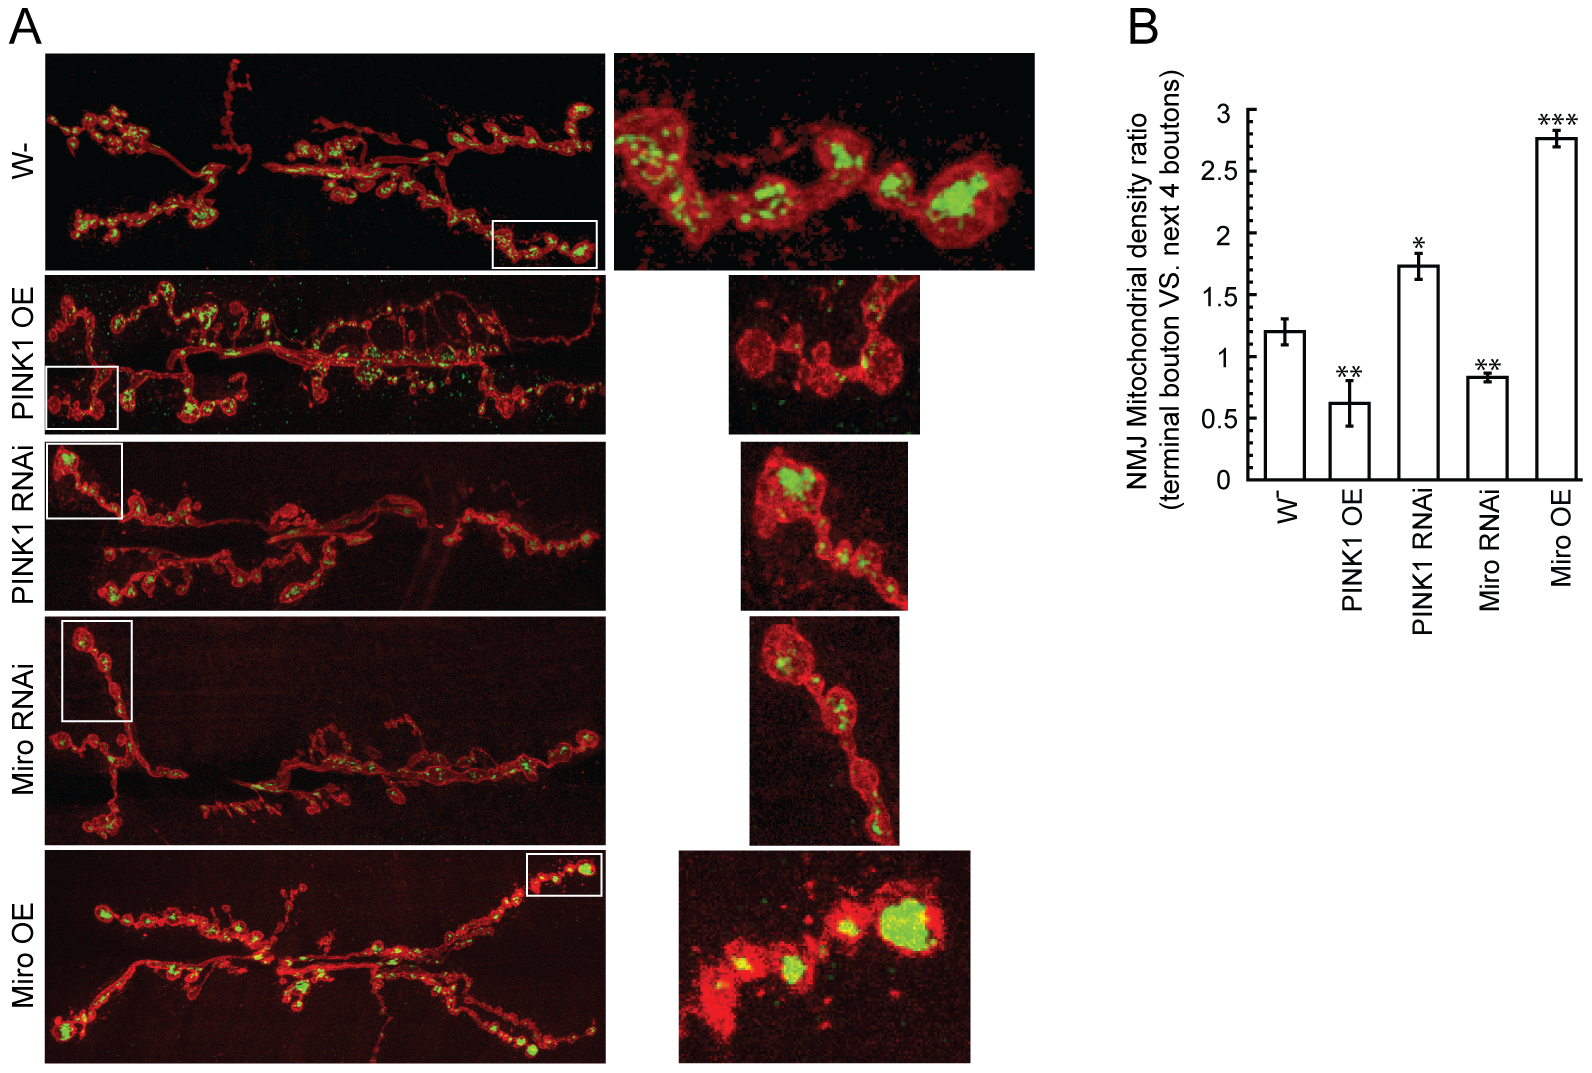 PINK1 affects mitochondrial distribution within motor neuron nerve terminals at the <i>Drosophila</i> larval neuromuscular junction.